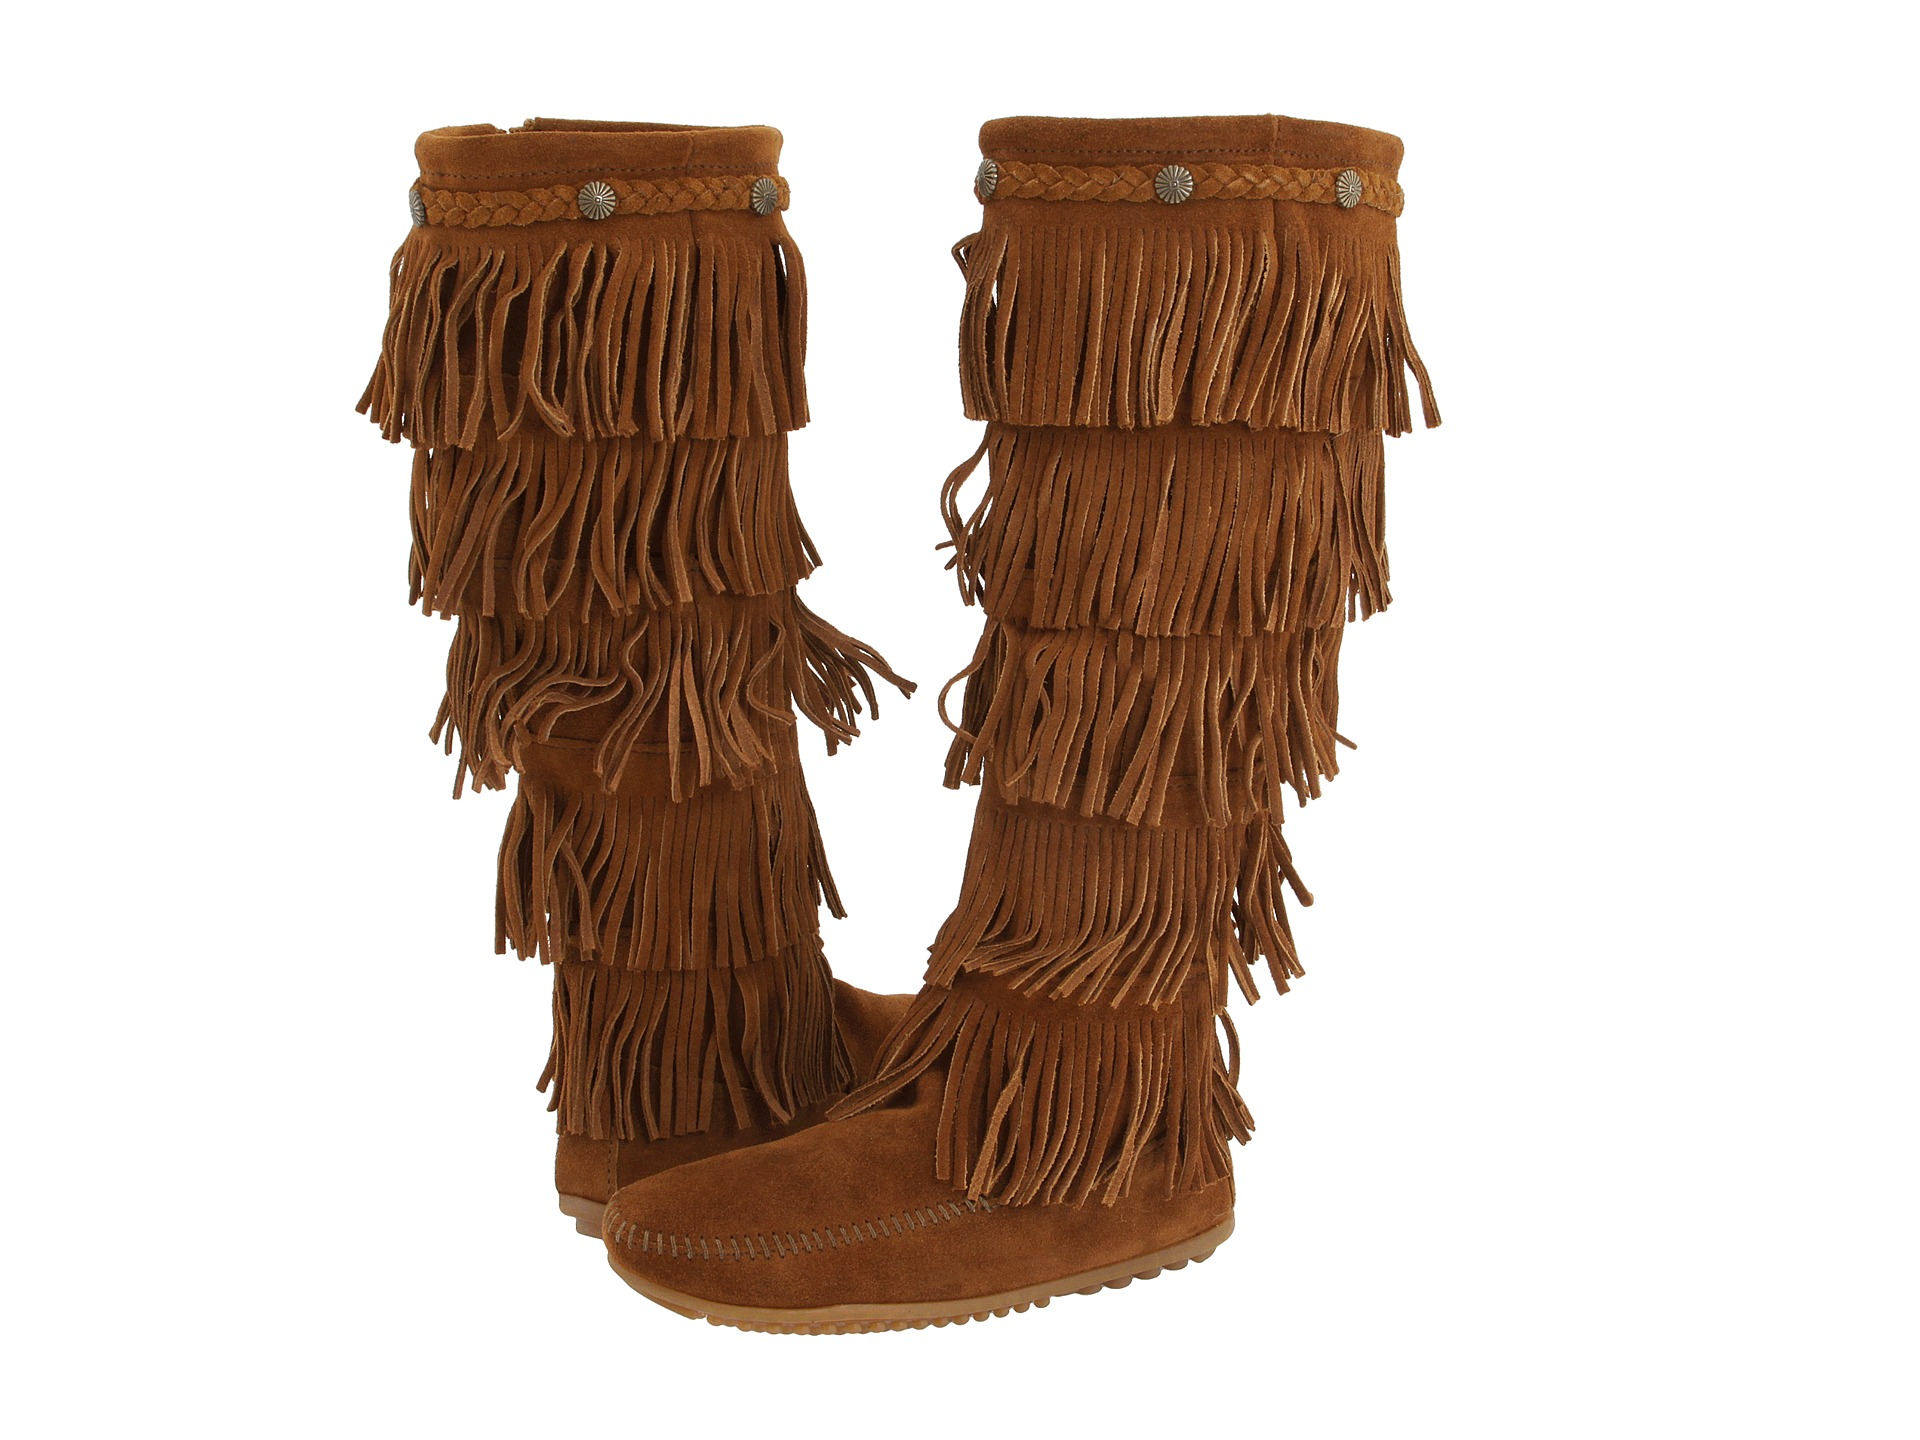 fringe boots minnetonka 5-layer fringe boot at zappos.com woshjfc